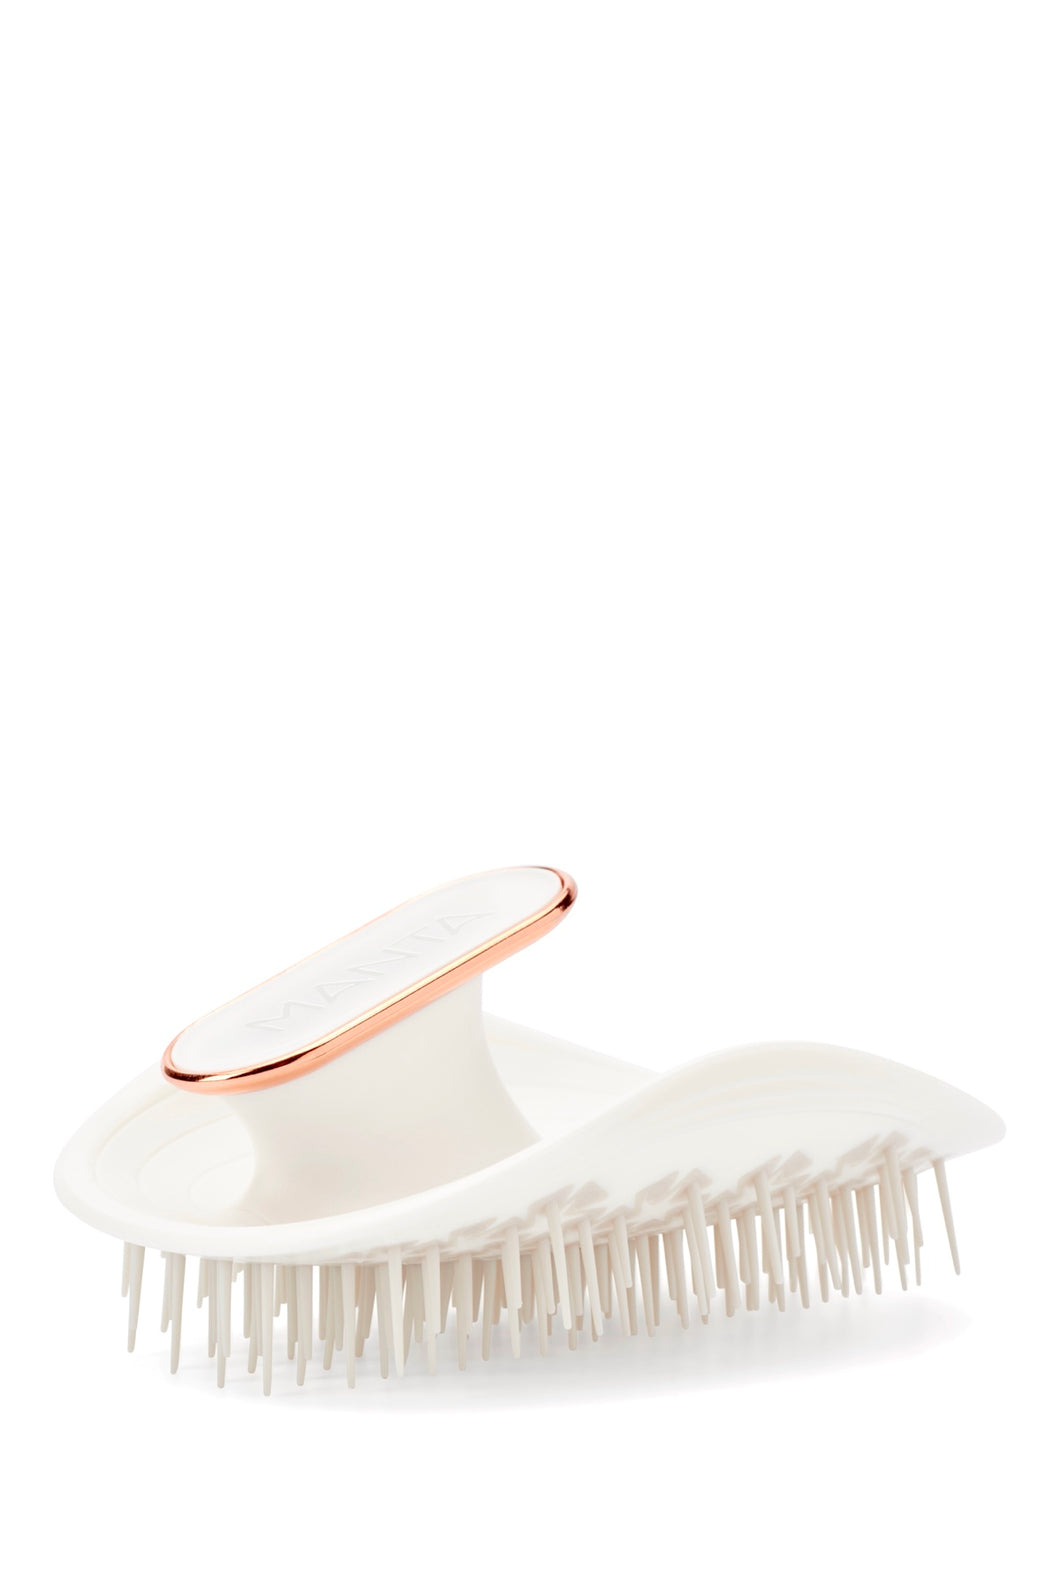 Manta Healthy Hairbrush White